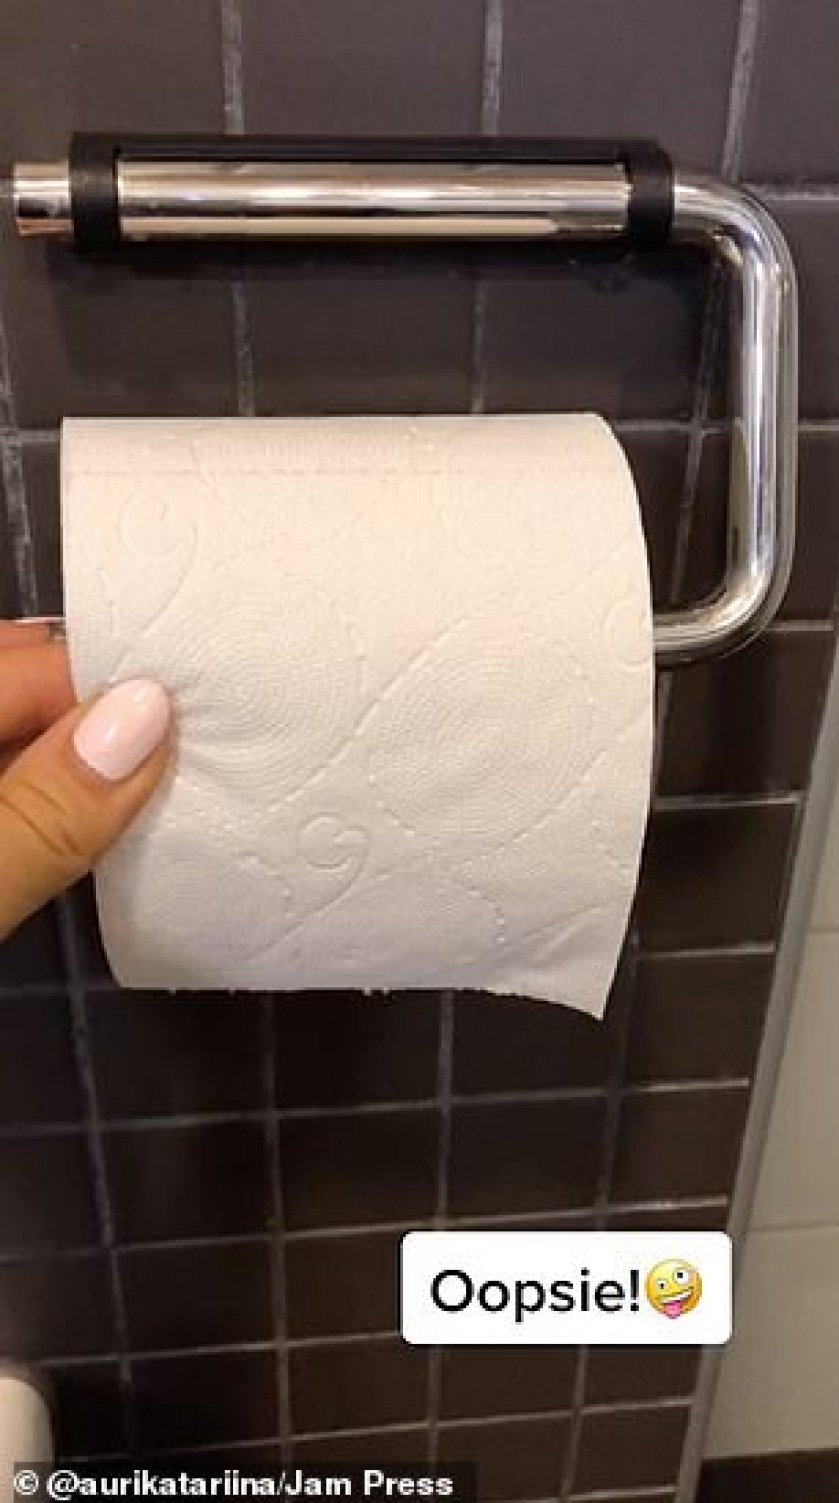 It's not just grime though, Auri even folded the end of a toilet roll